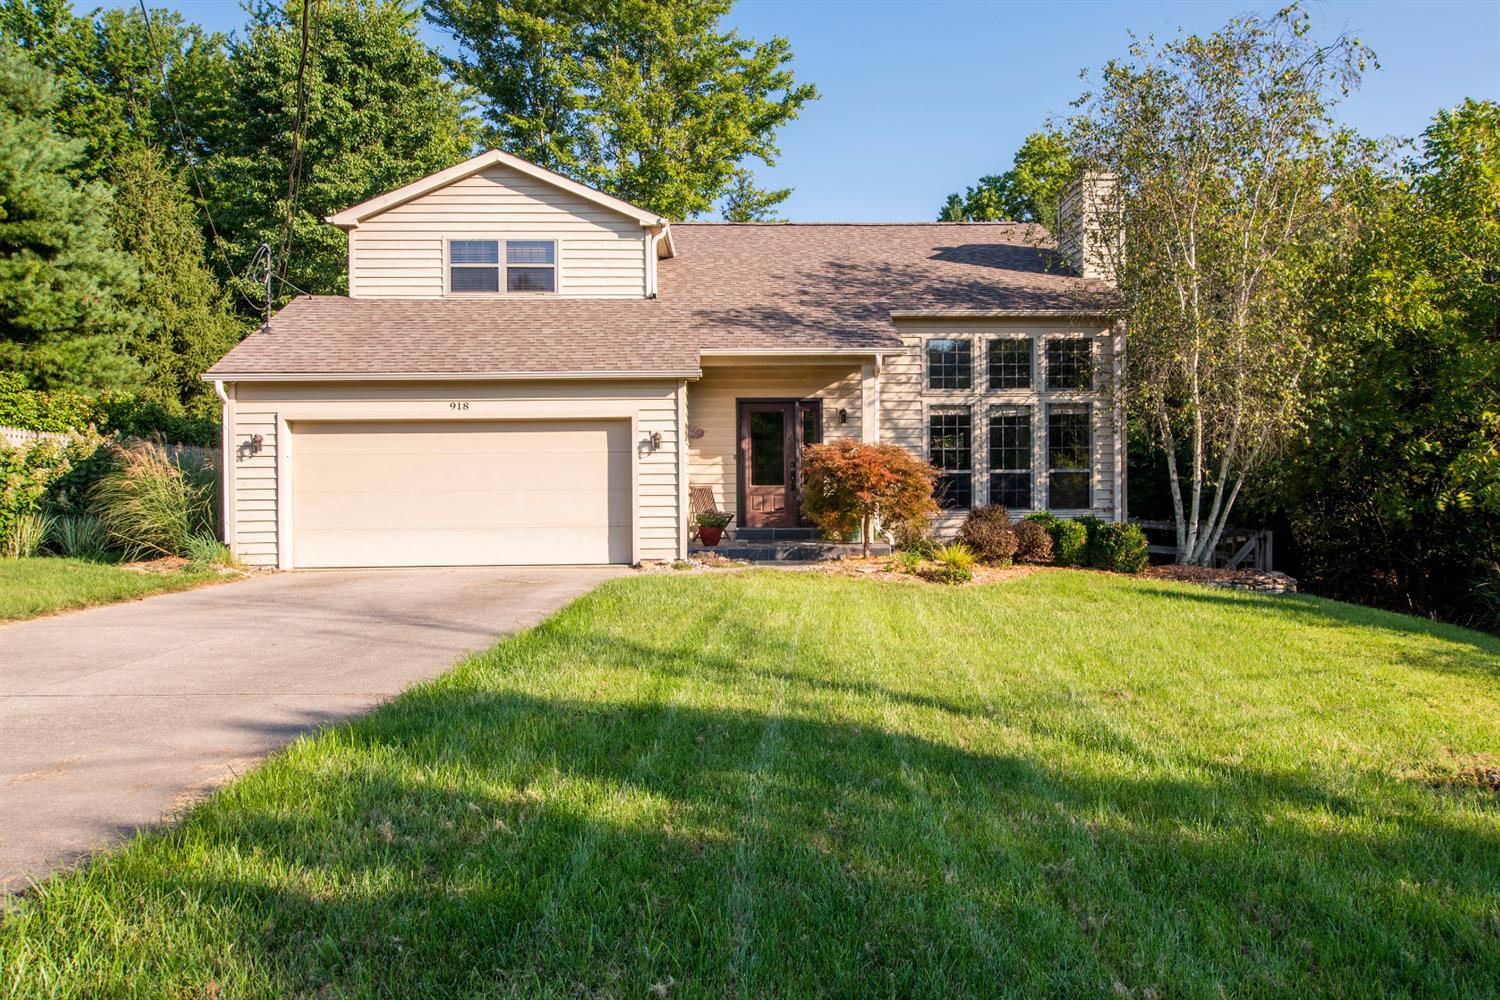 918 Shaylor Rd Union Twp. (Clermont), OH